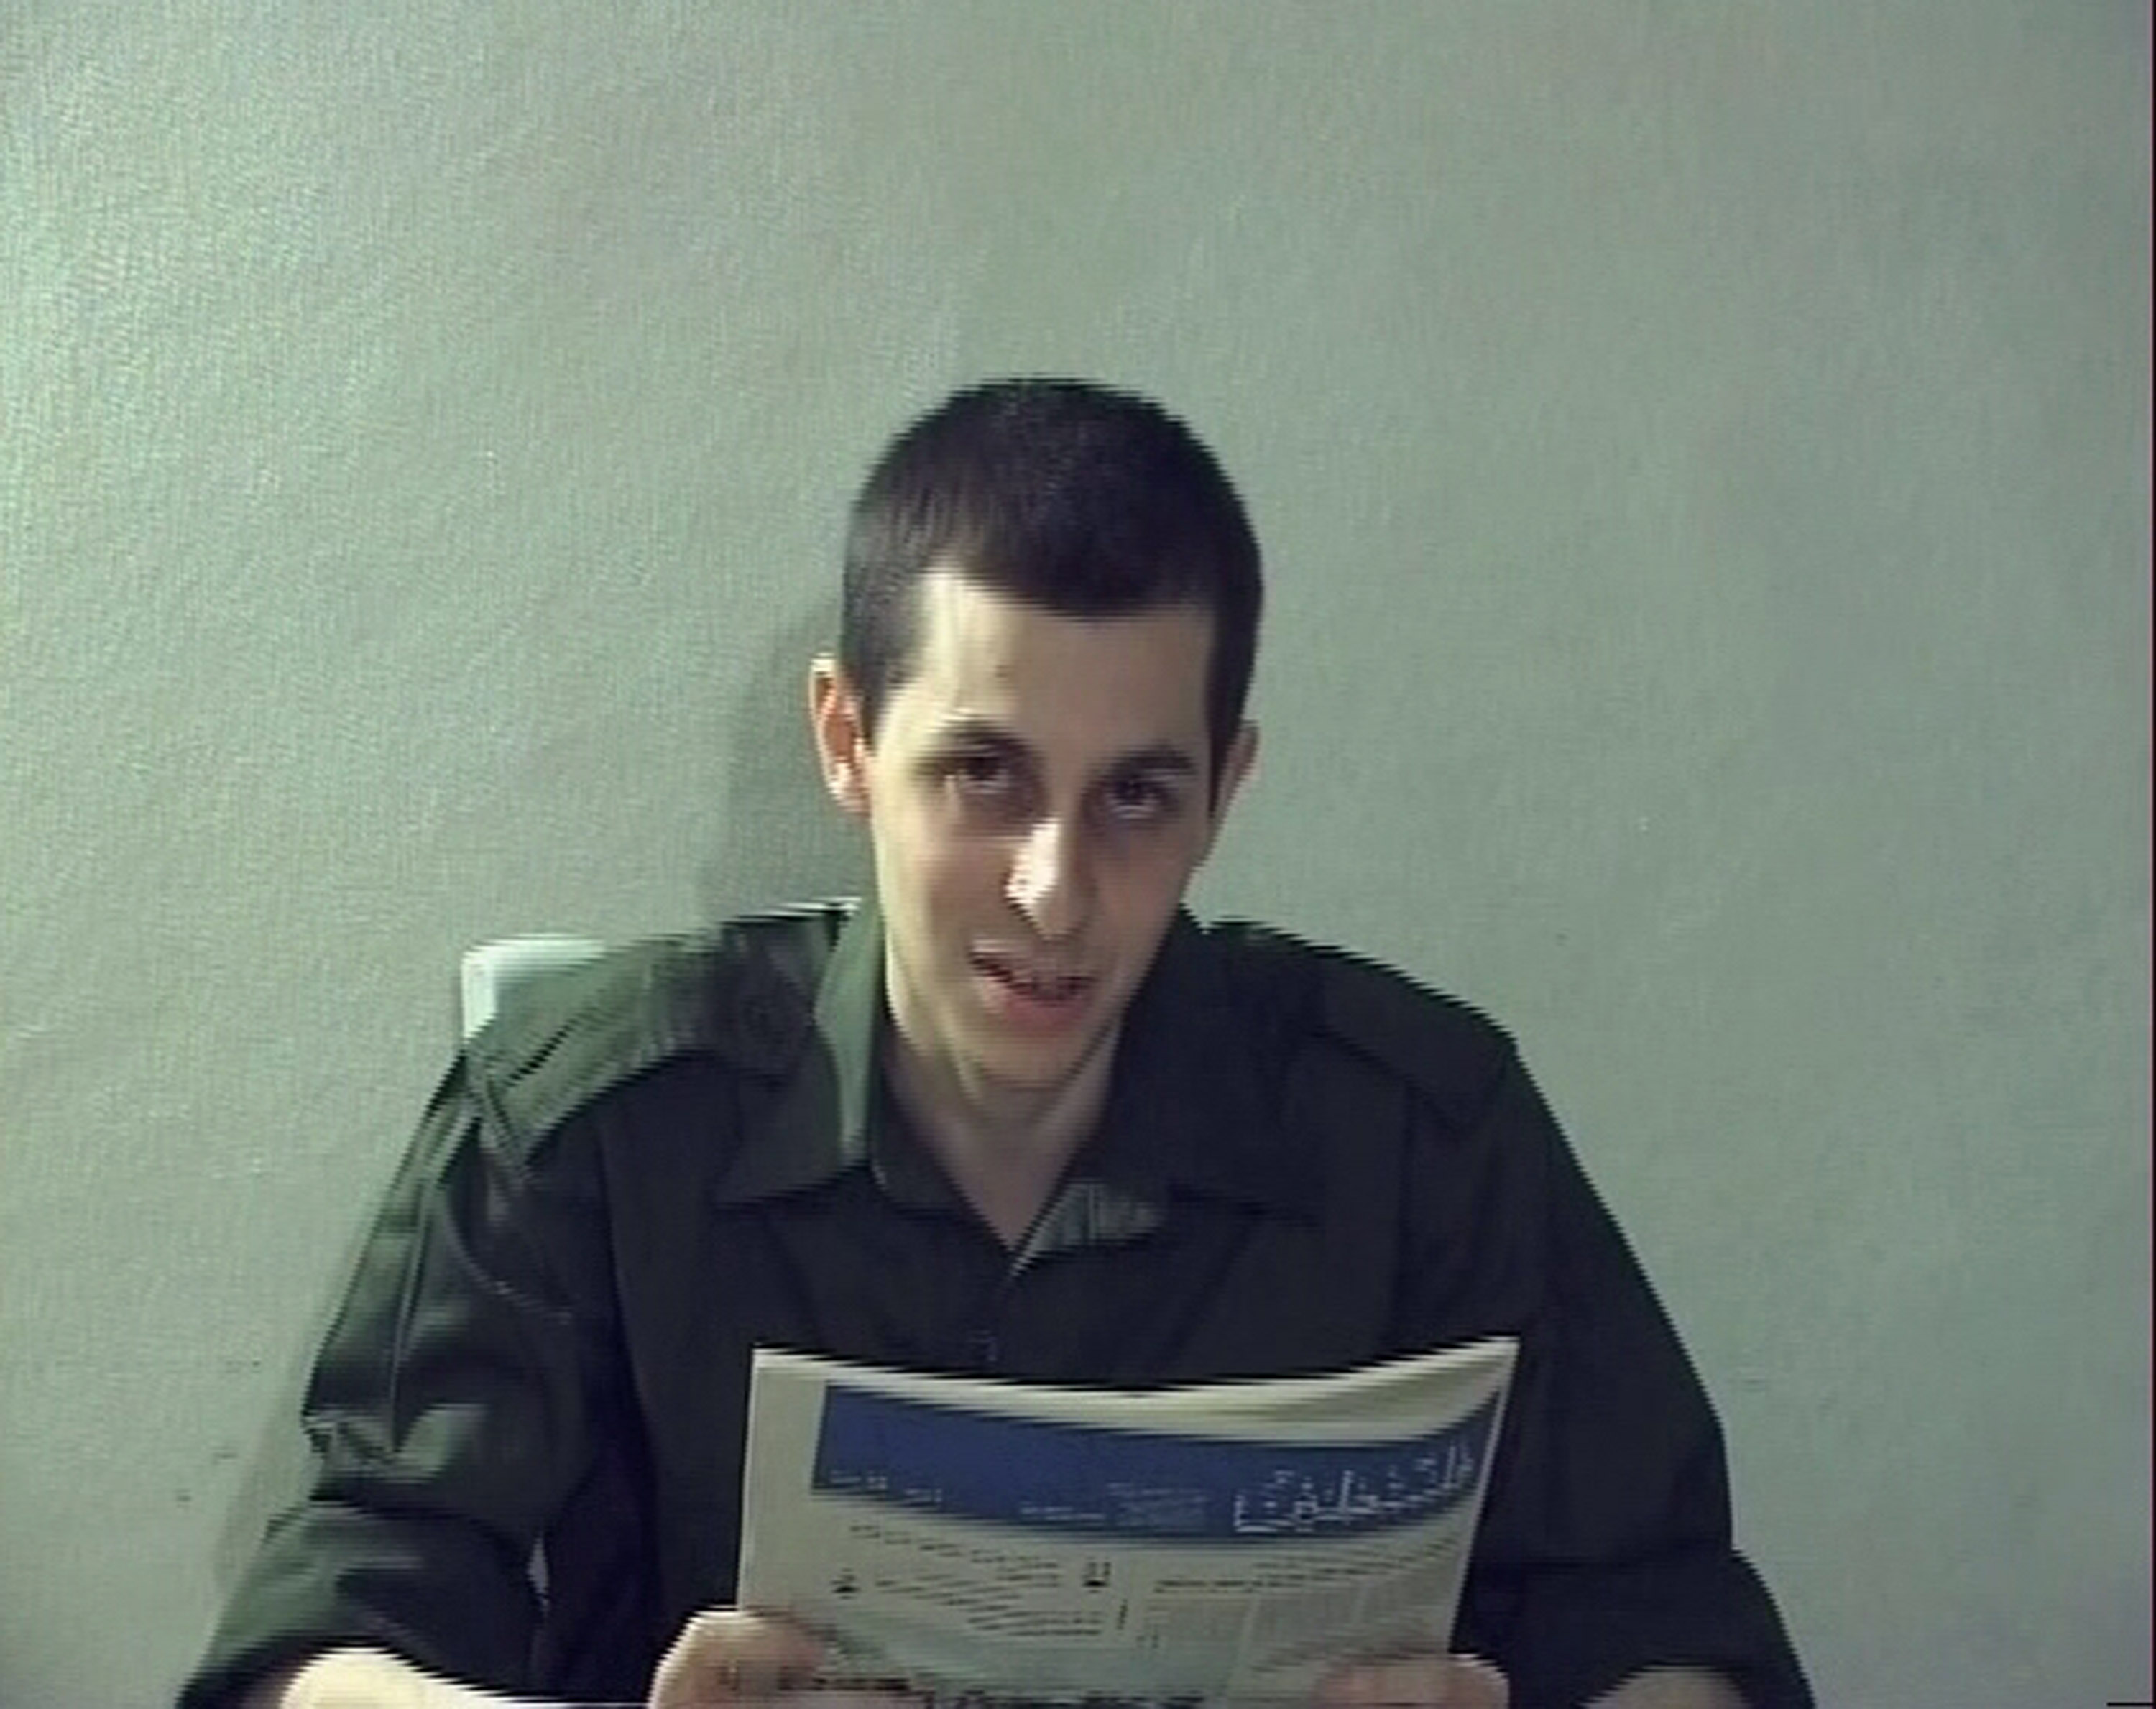 Still image from video released by Hamas of Gilad Shalit